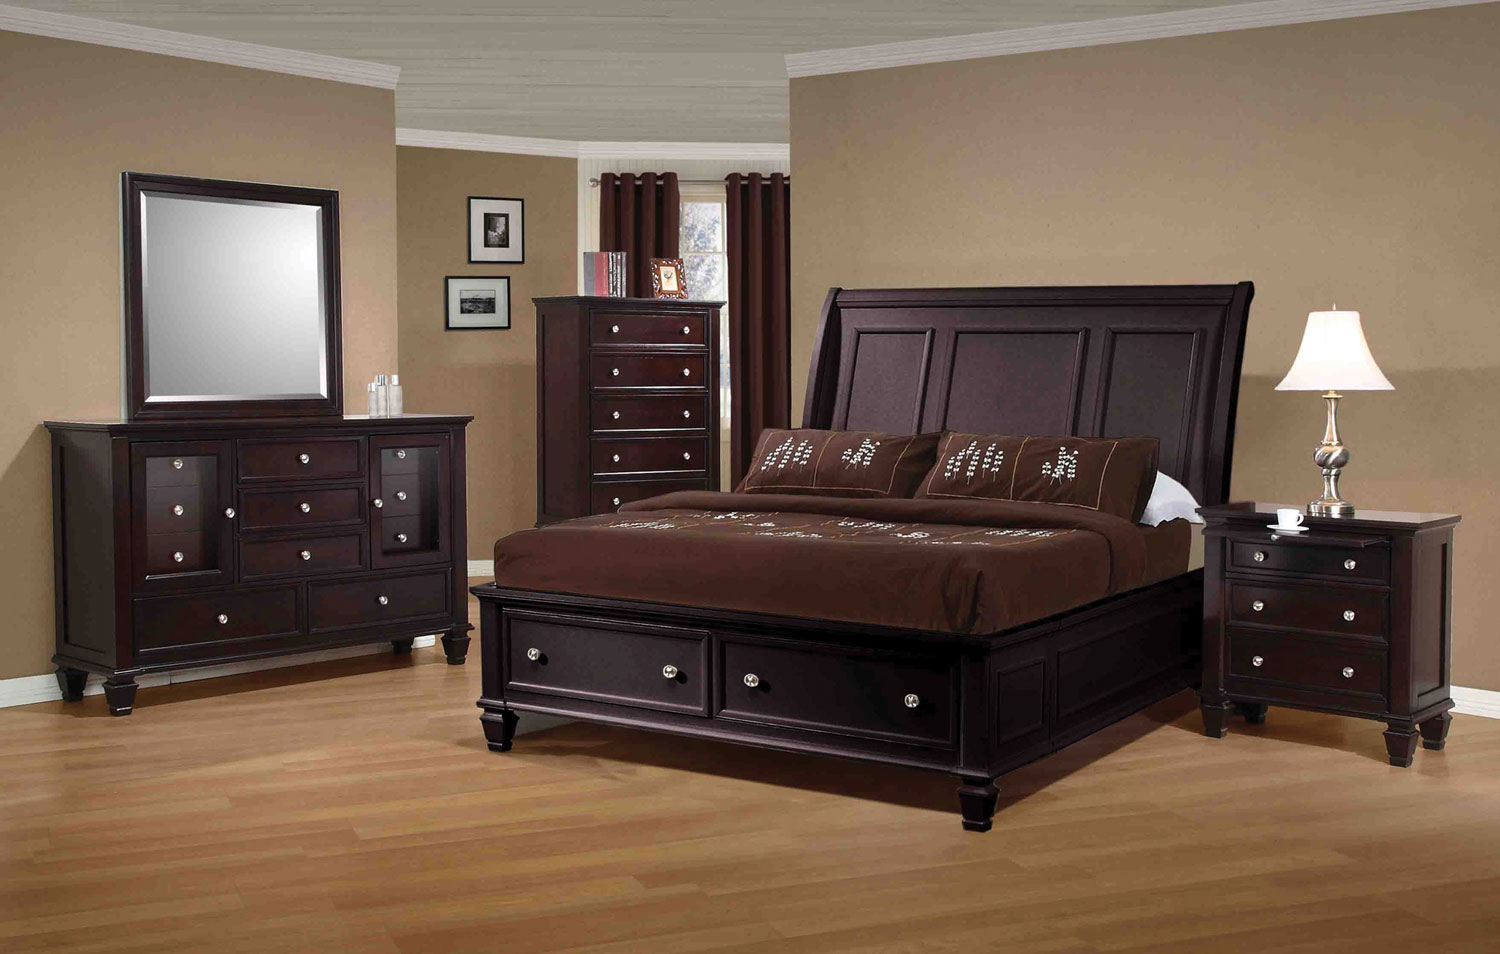 Coaster Sandy Beach Bedroom Set - Cappuccino 201990-BedSet at ...